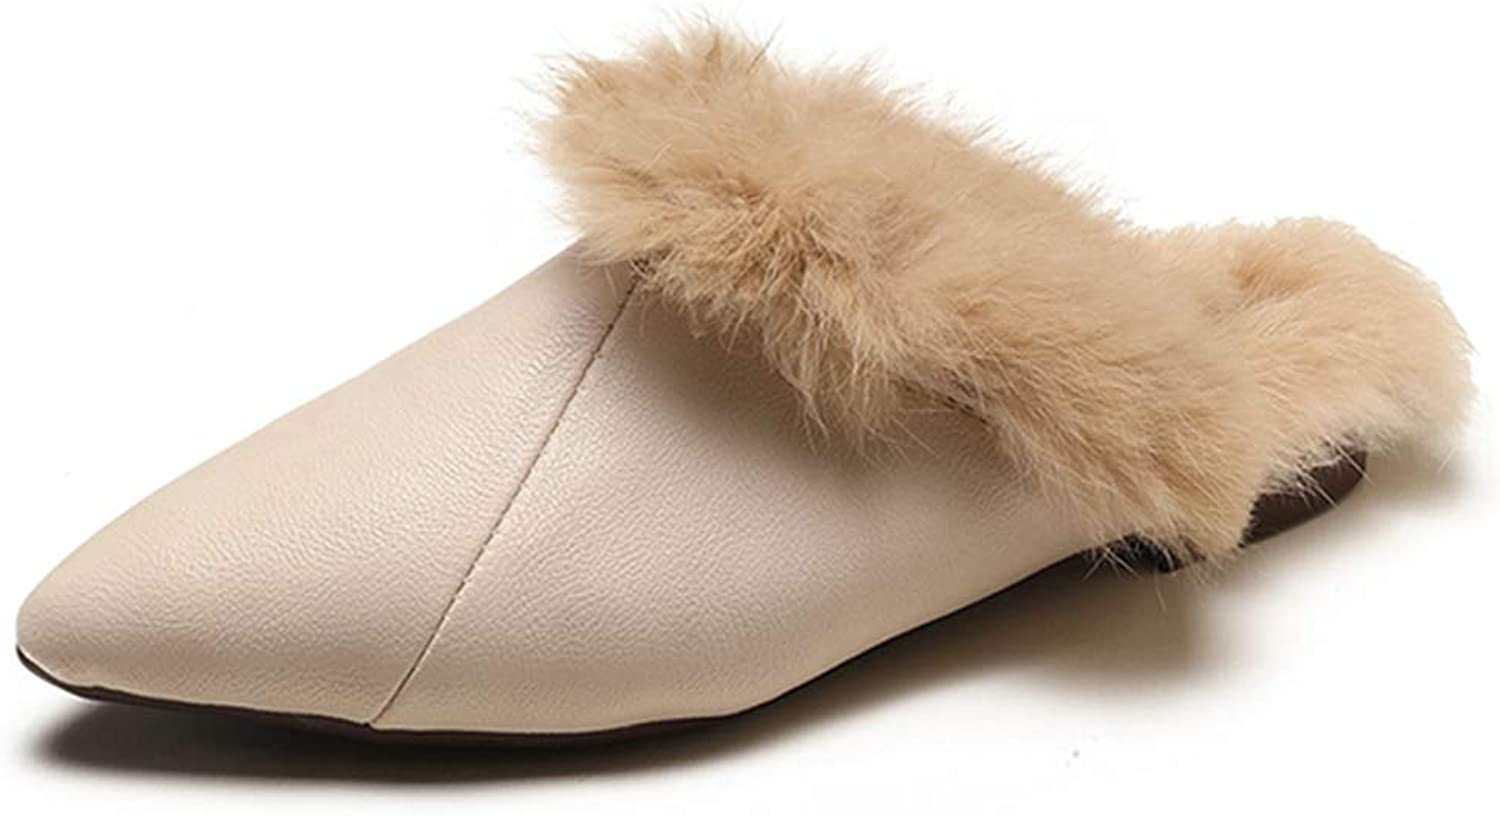 FAY WATERS Women's Faux Fur Slippers Fashion Casual Winter Warm Slip On Solid Pointed Toe Slides Creepers